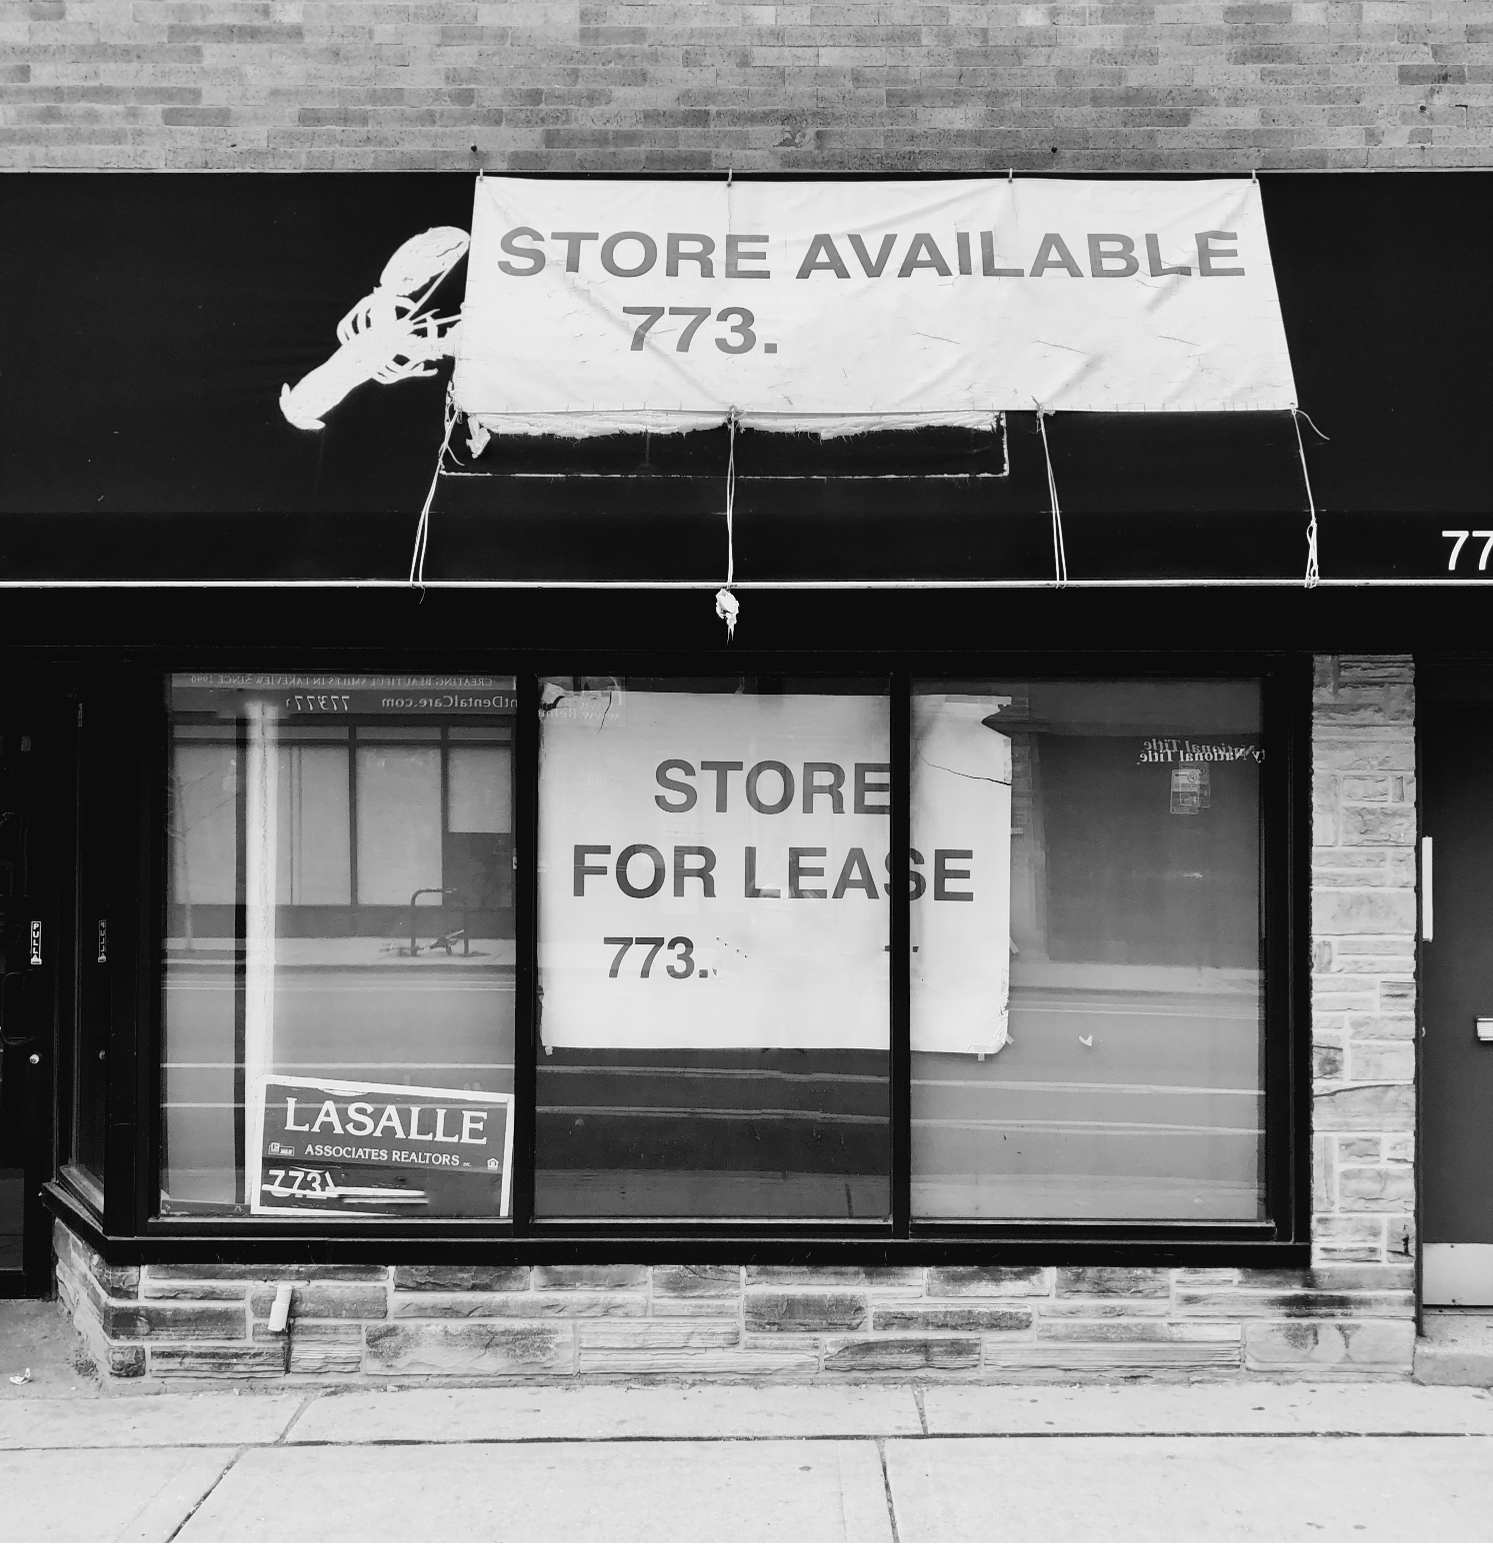 Store-for-lease-BW-phone-obscurred-072821